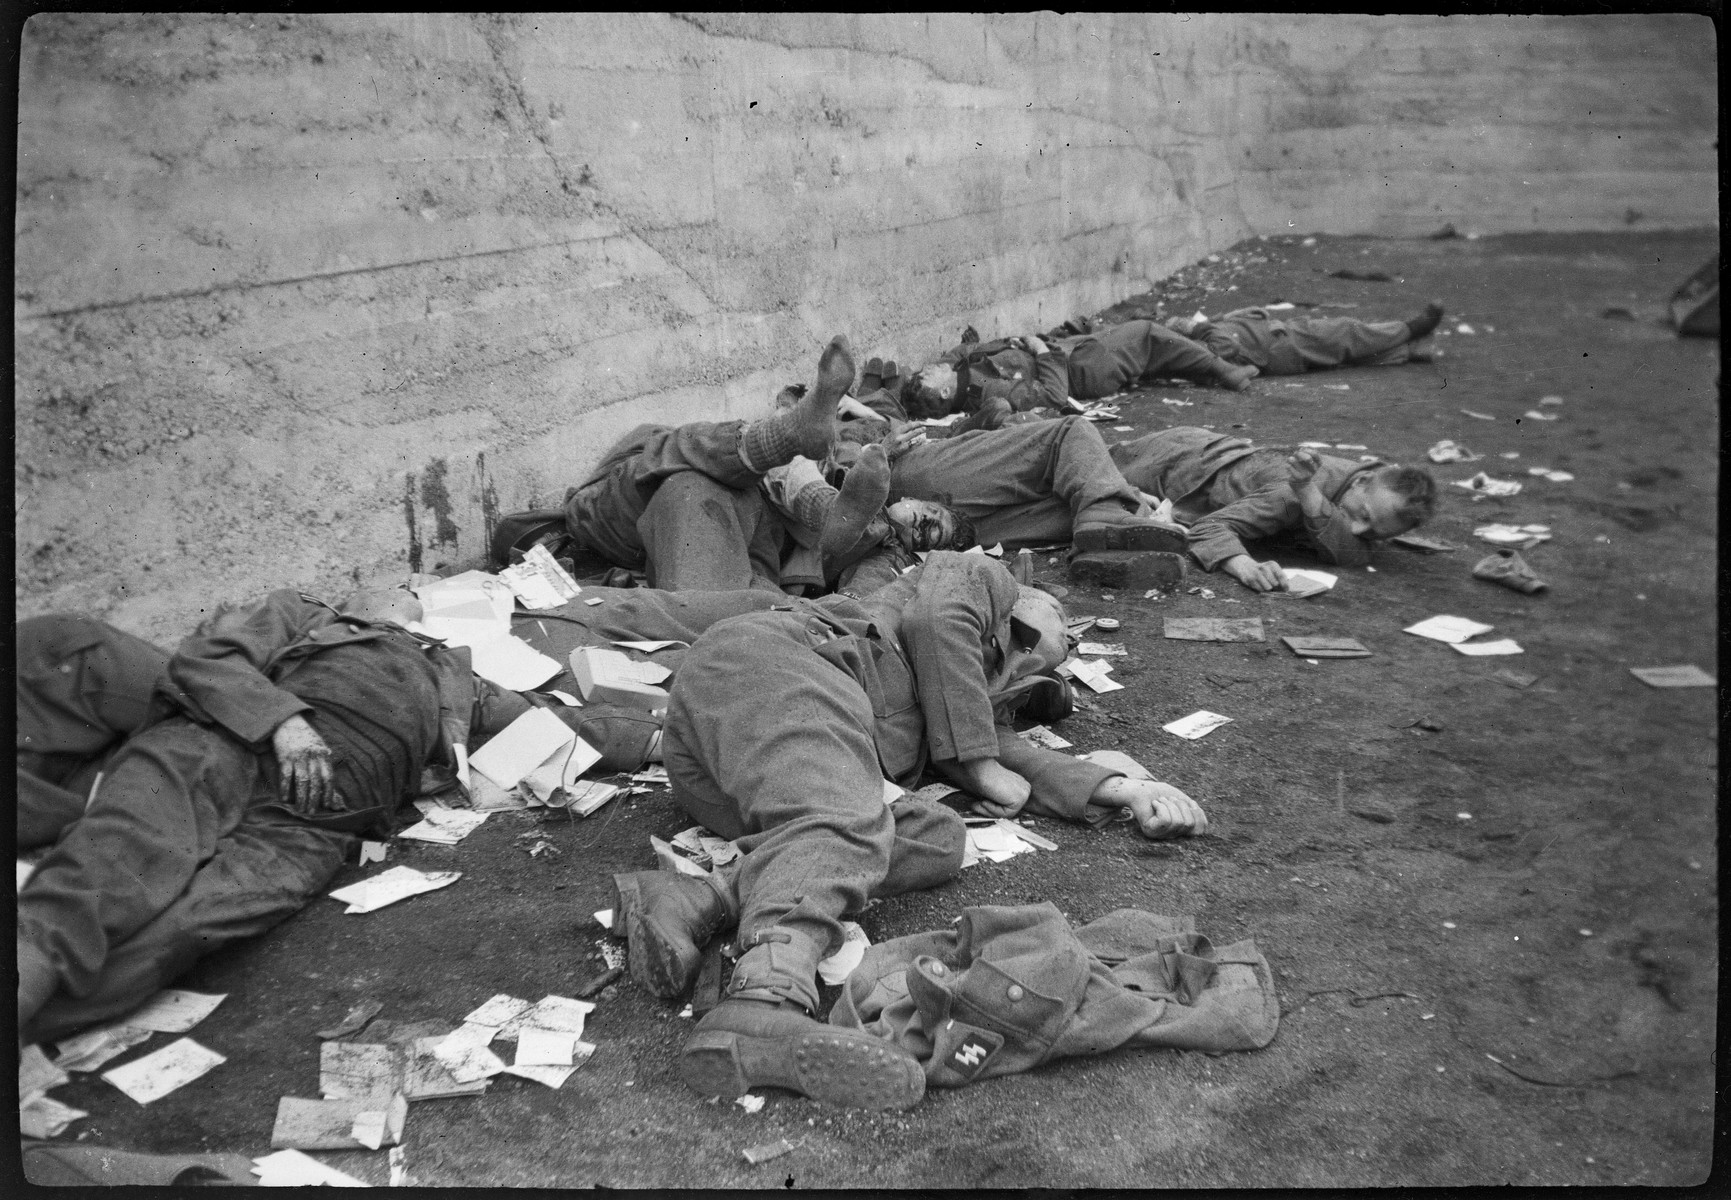 The bodies of German military personnel at Dachau who were summarily executed by U.S. troops lie amid scattered papers.